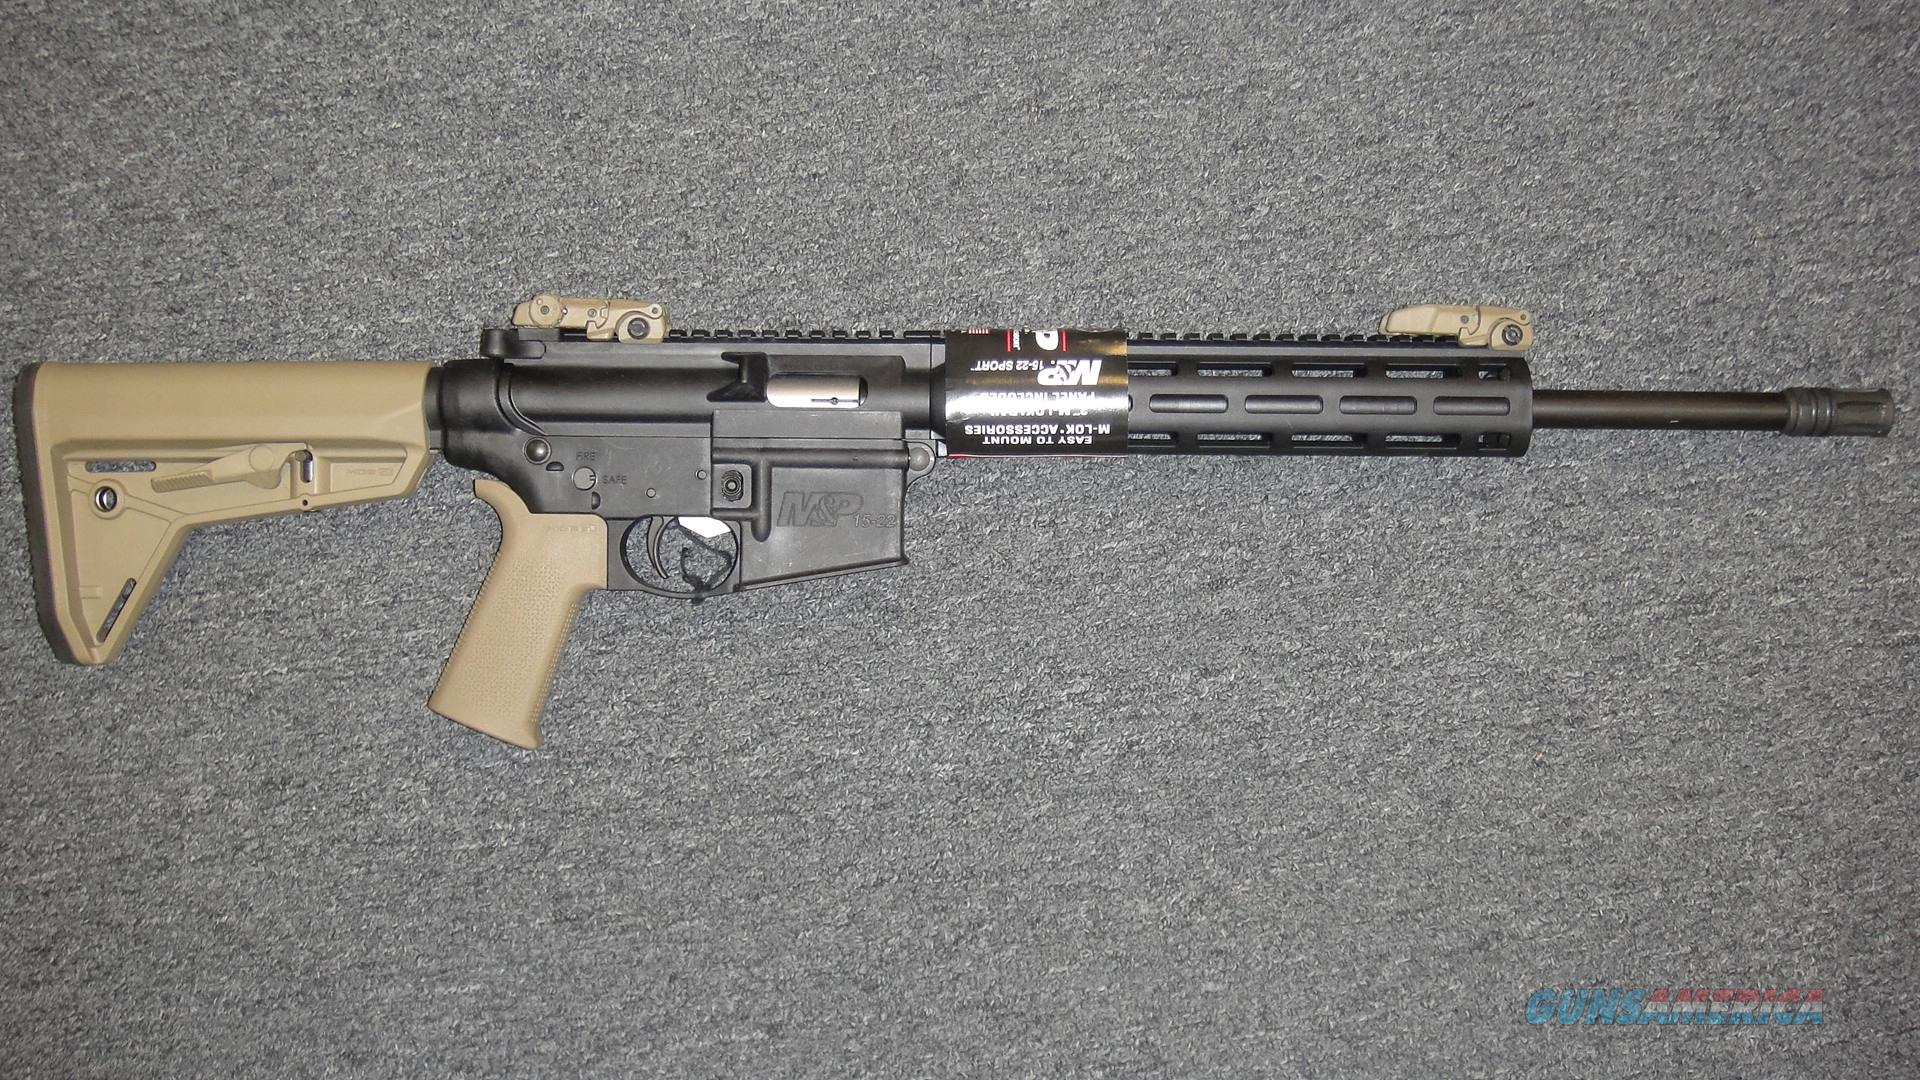 Smith & Wesson M&P15-22 Sport  Guns > Rifles > Smith & Wesson Rifles > M&P